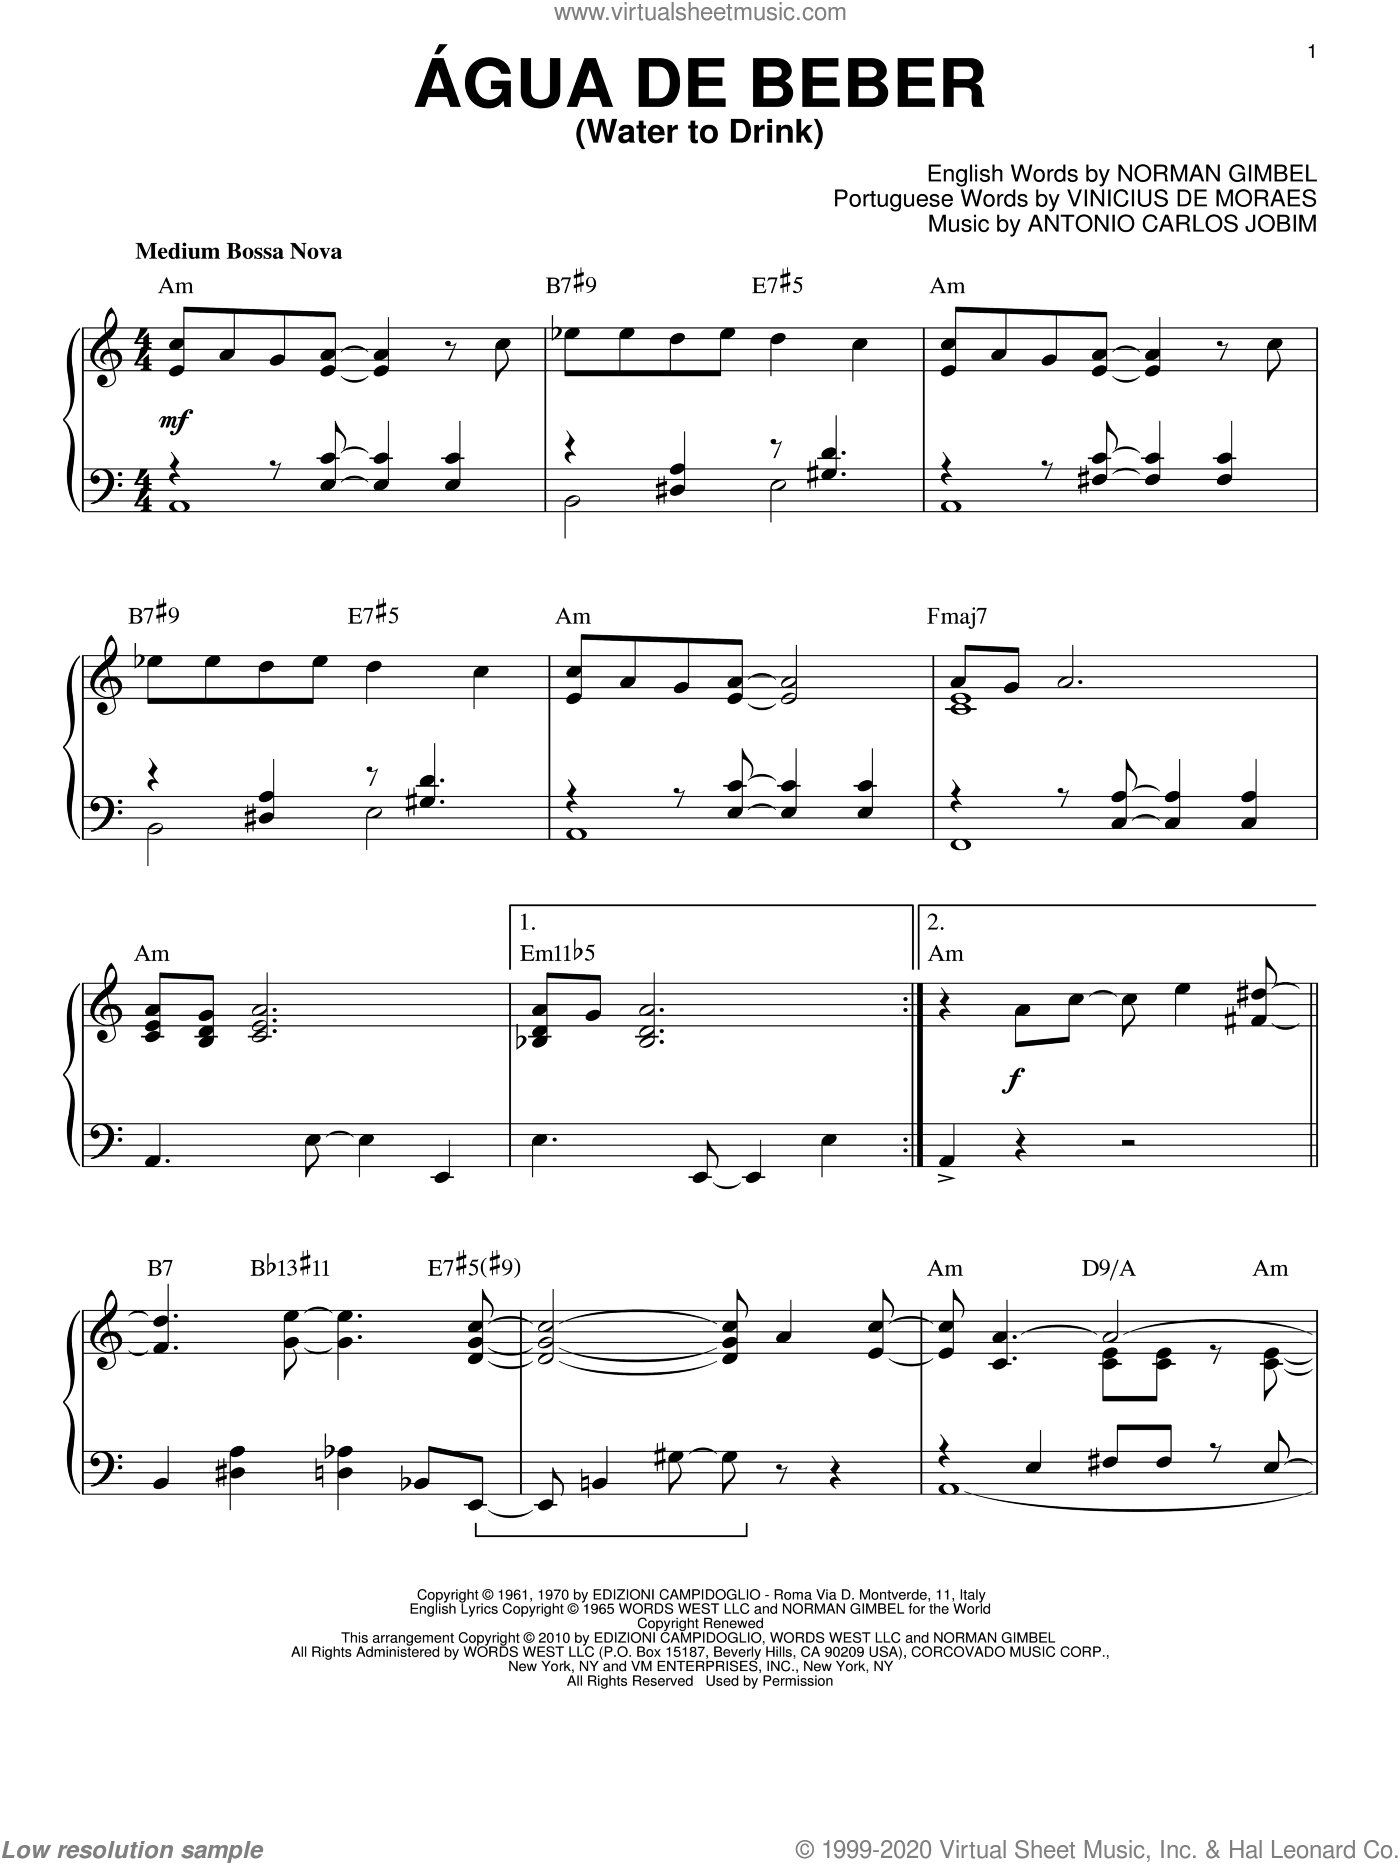 Agua De Beber (Water To Drink) sheet music for piano solo by Vinicius de Moraes